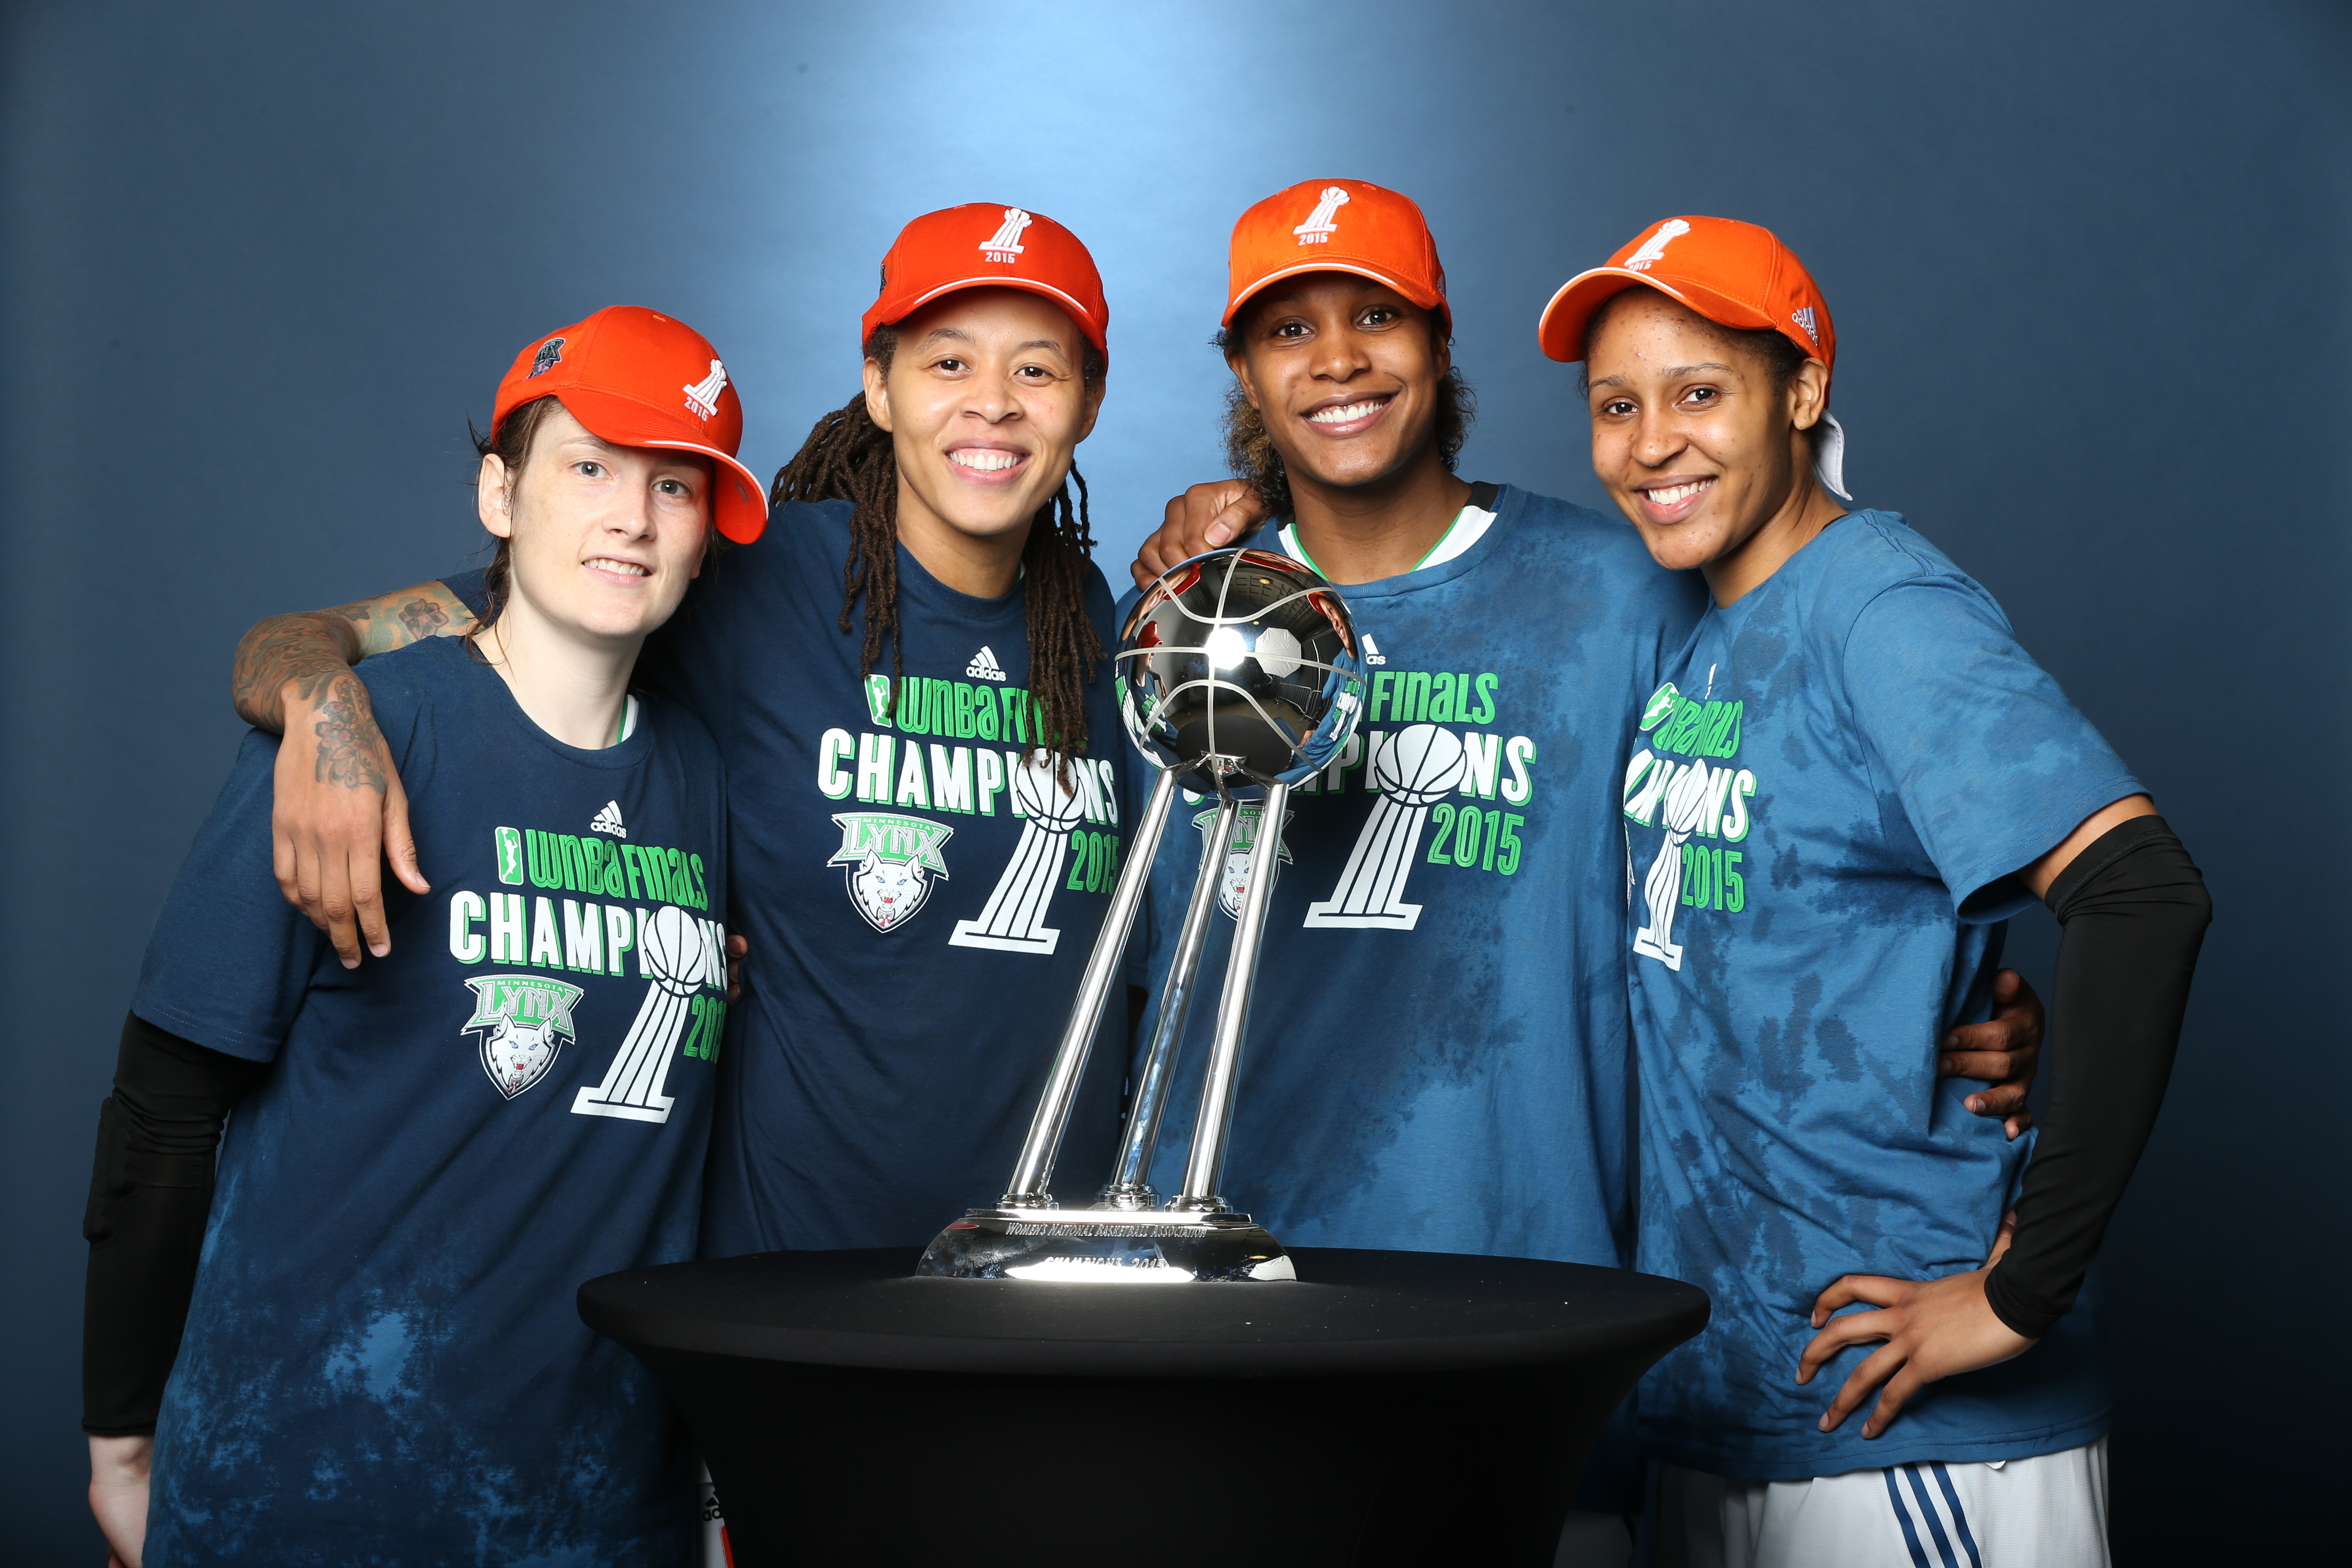 MINNEAPOLIS, MN - OCTOBER 14:  Lindsay Whalen #13, Seimone Augustus #33, Rebekkah Brunson #32 and Maya Moore #23 of the Minnesota Lynx pose for a portrait with the WNBA Championship Trophy after winning the 2015 WNBA Championship in Game Five of the 2015 WNBA Finals against the Indiana Fever on October 14, 2015 at Target Center in Minneapolis, Minnesota.  NOTE TO USER: User expressly acknowledges and agrees that, by downloading and or using this Photograph, user is consenting to the terms and conditions of the Getty Images License Agreement. Mandatory Copyright Notice: Copyright 2015 NBAE (Photo by David Sherman/NBAE via Getty Images)